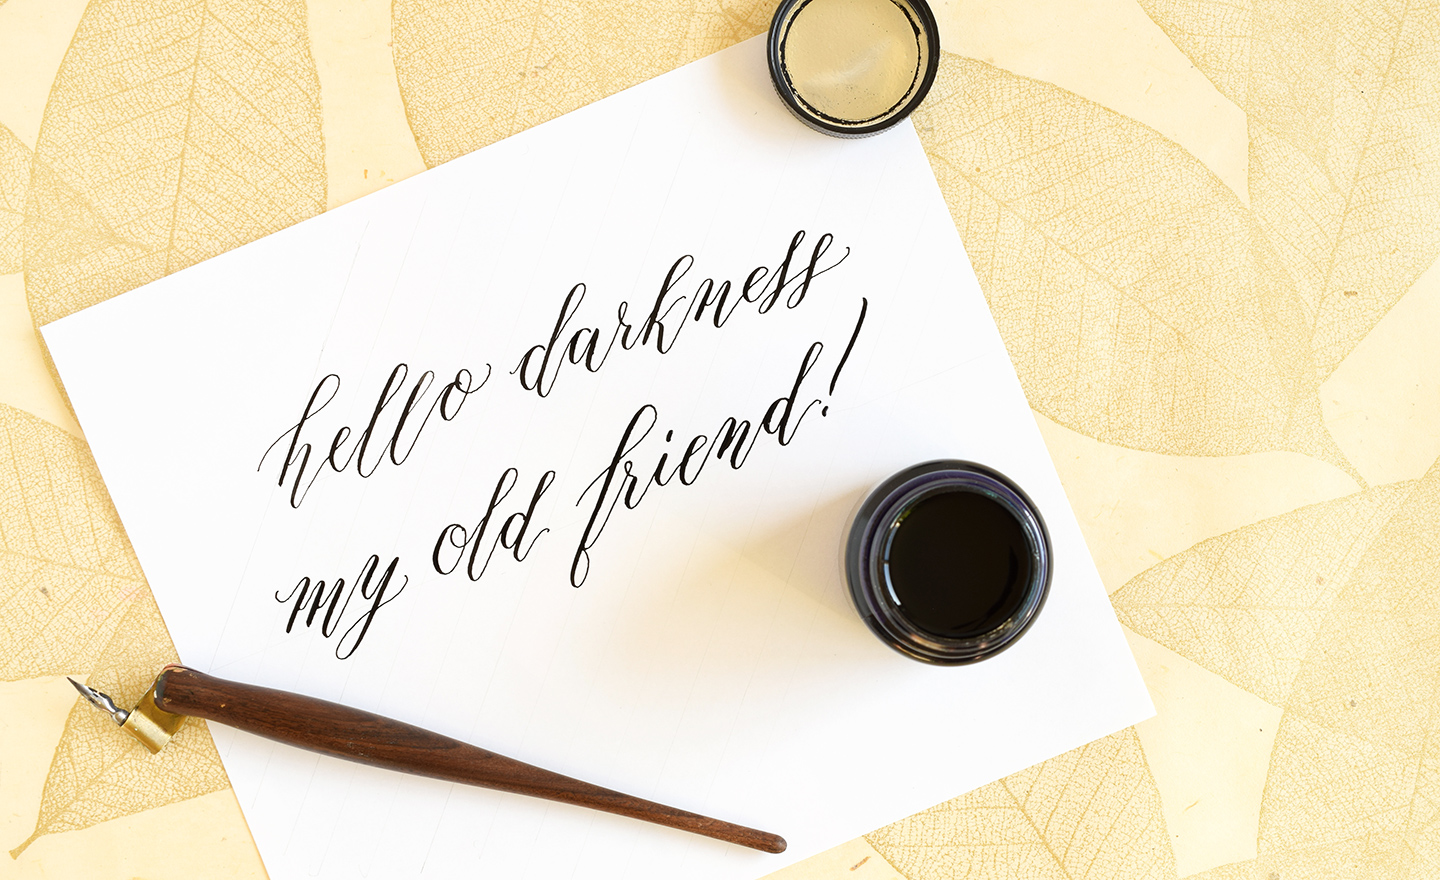 Calligraphy tips to improve your writing slant the postman s